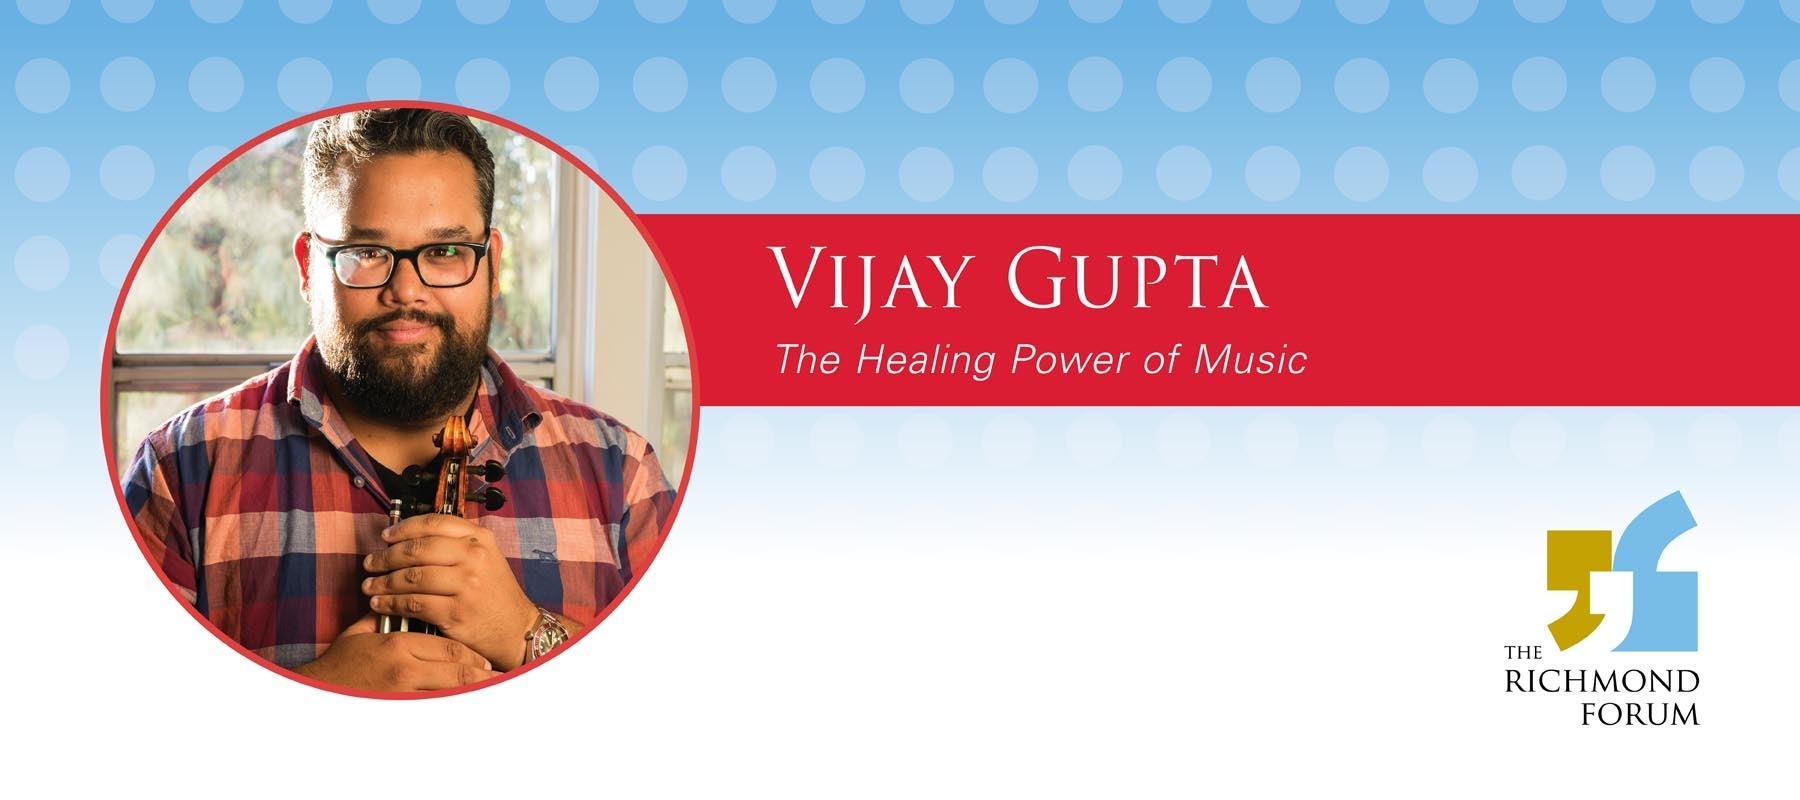 POSTPONED: The Richmond Forum Presents Vijay Gupta